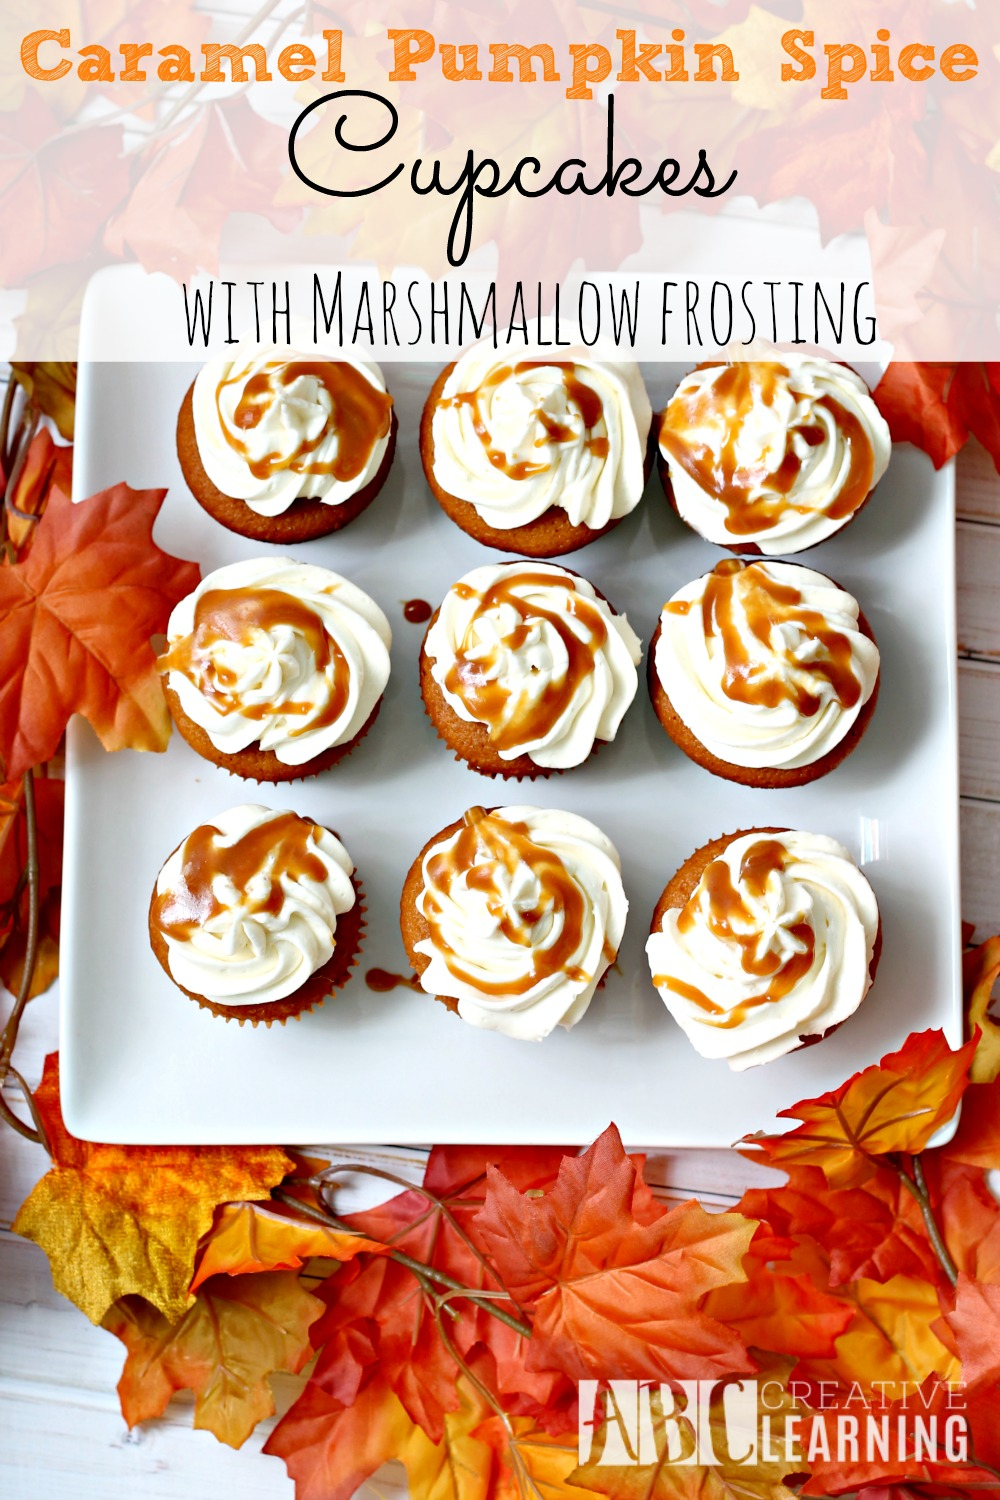 Caramel Pumpkin Spice Cupcakes with Marshmallow Frosting falls